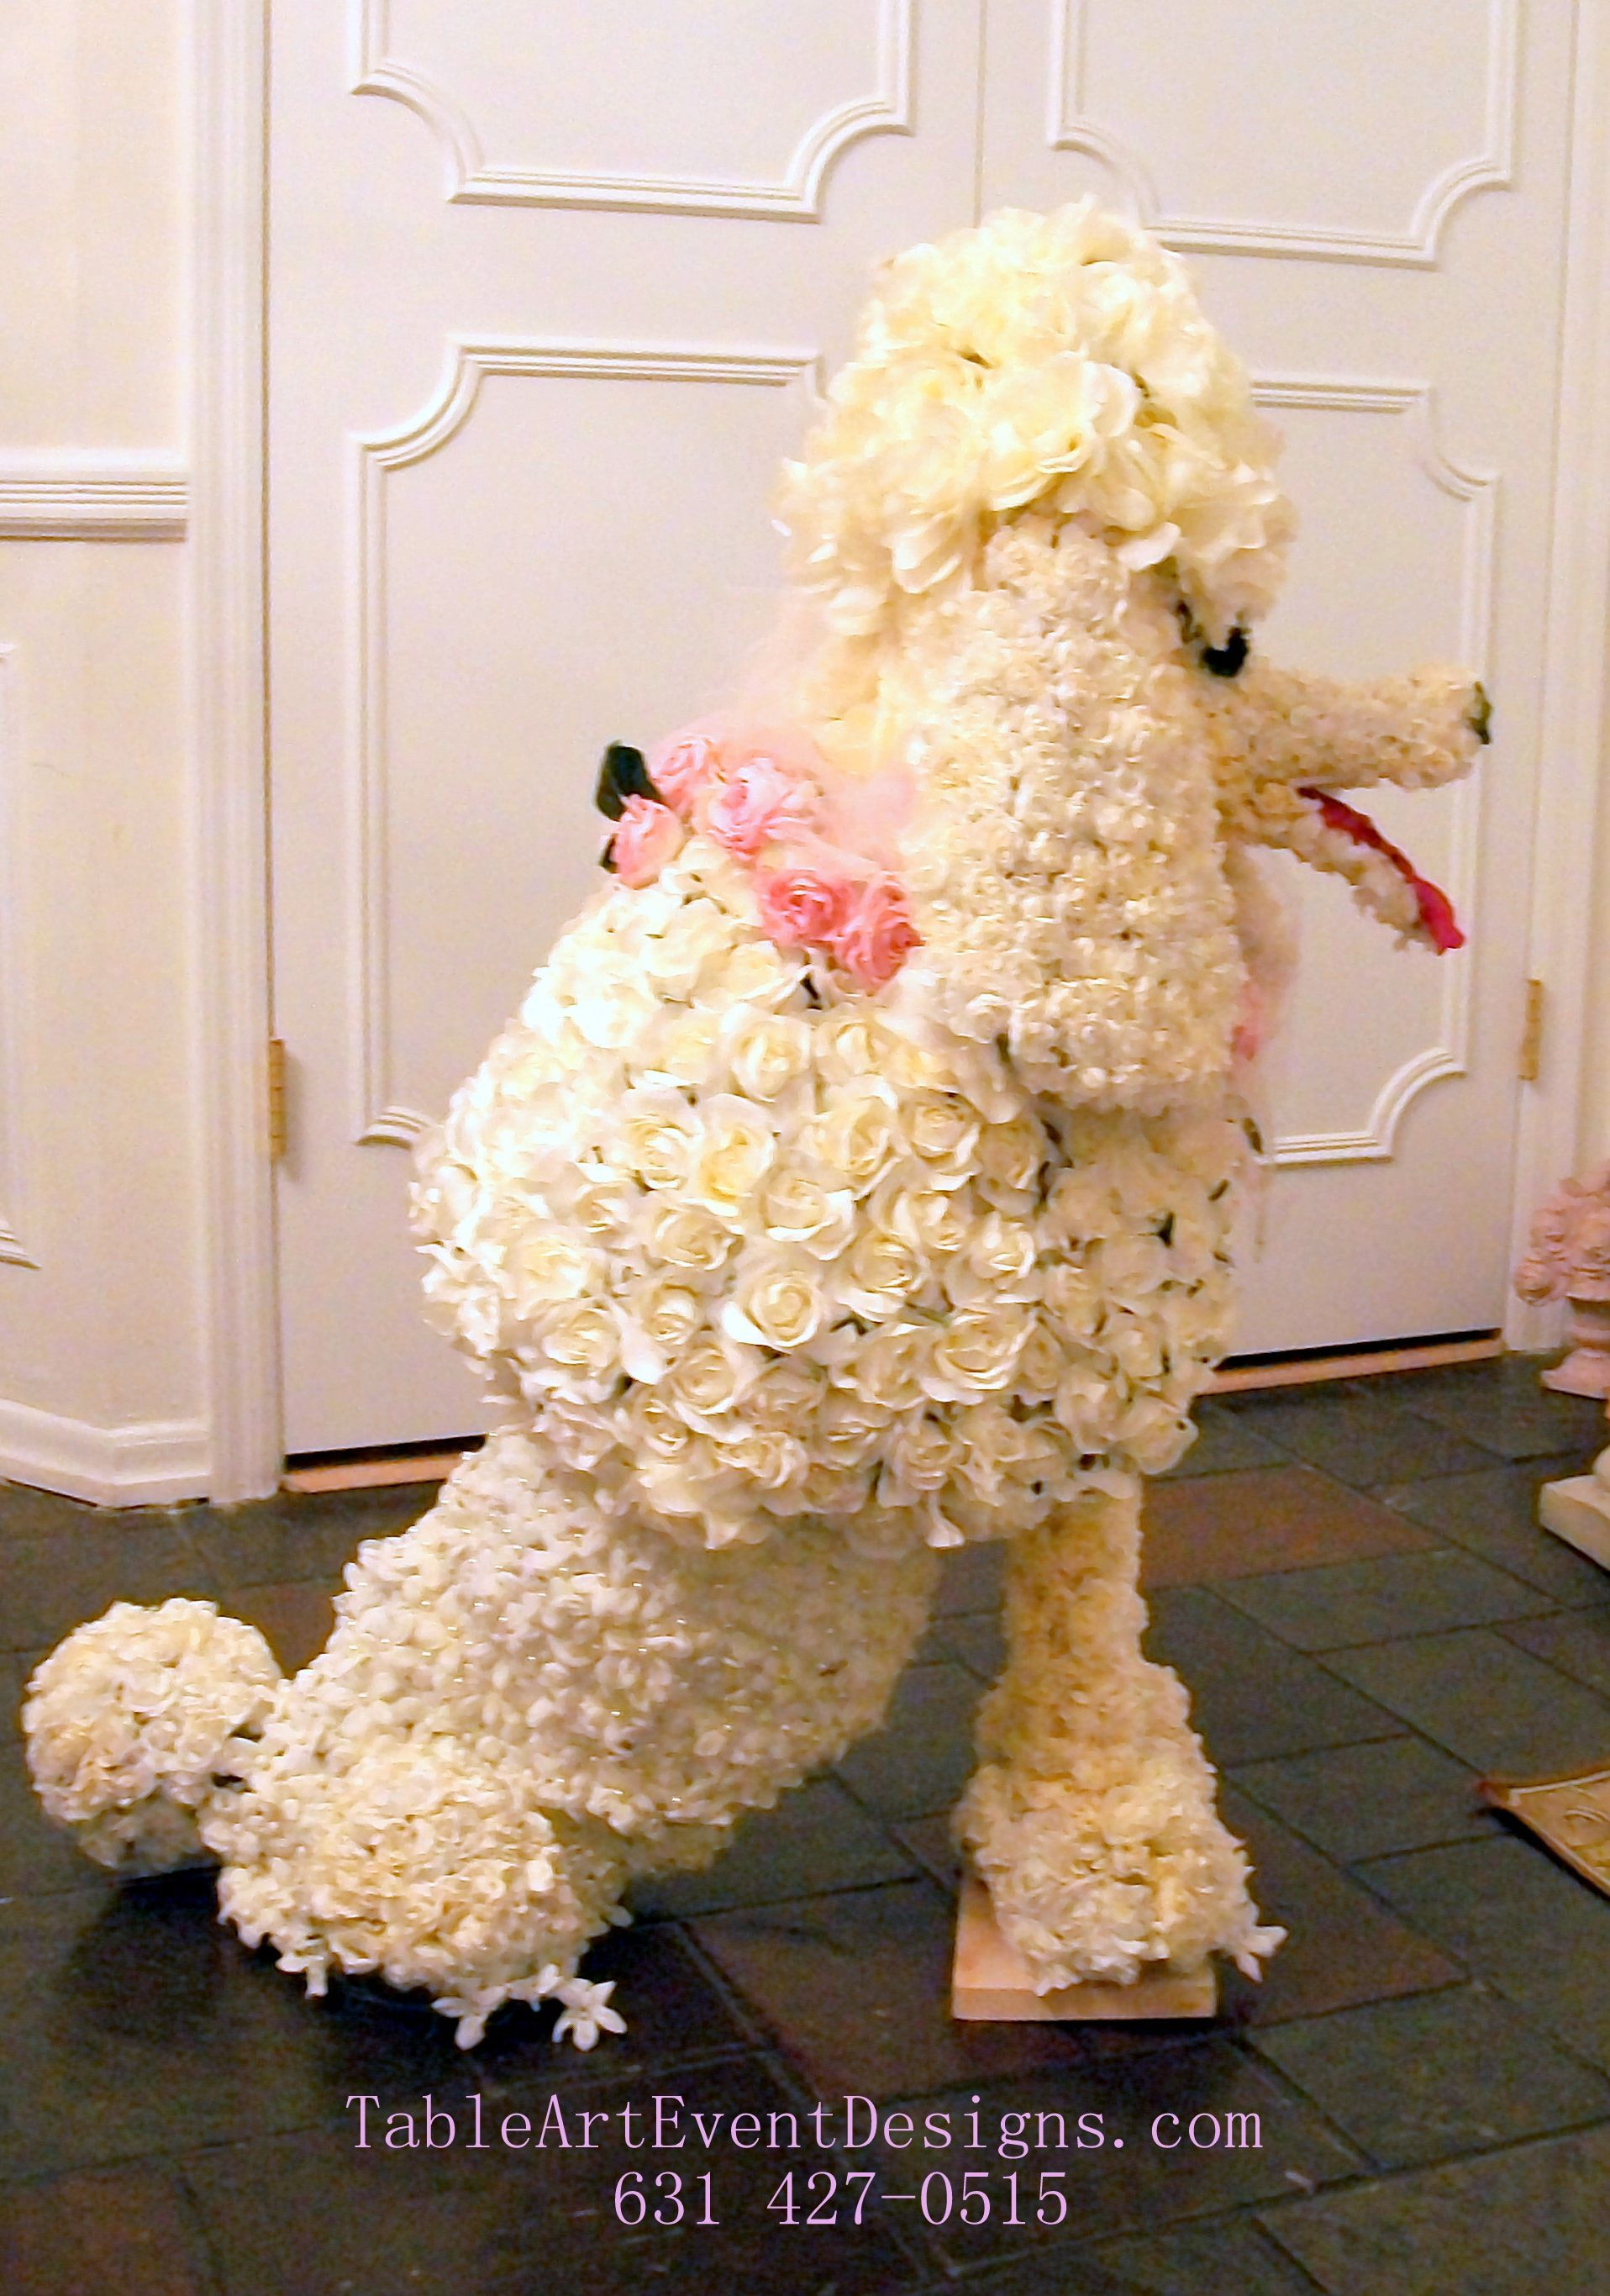 Floral Sculpture of French Poodle Dog Available for Special Events Displays and Parties